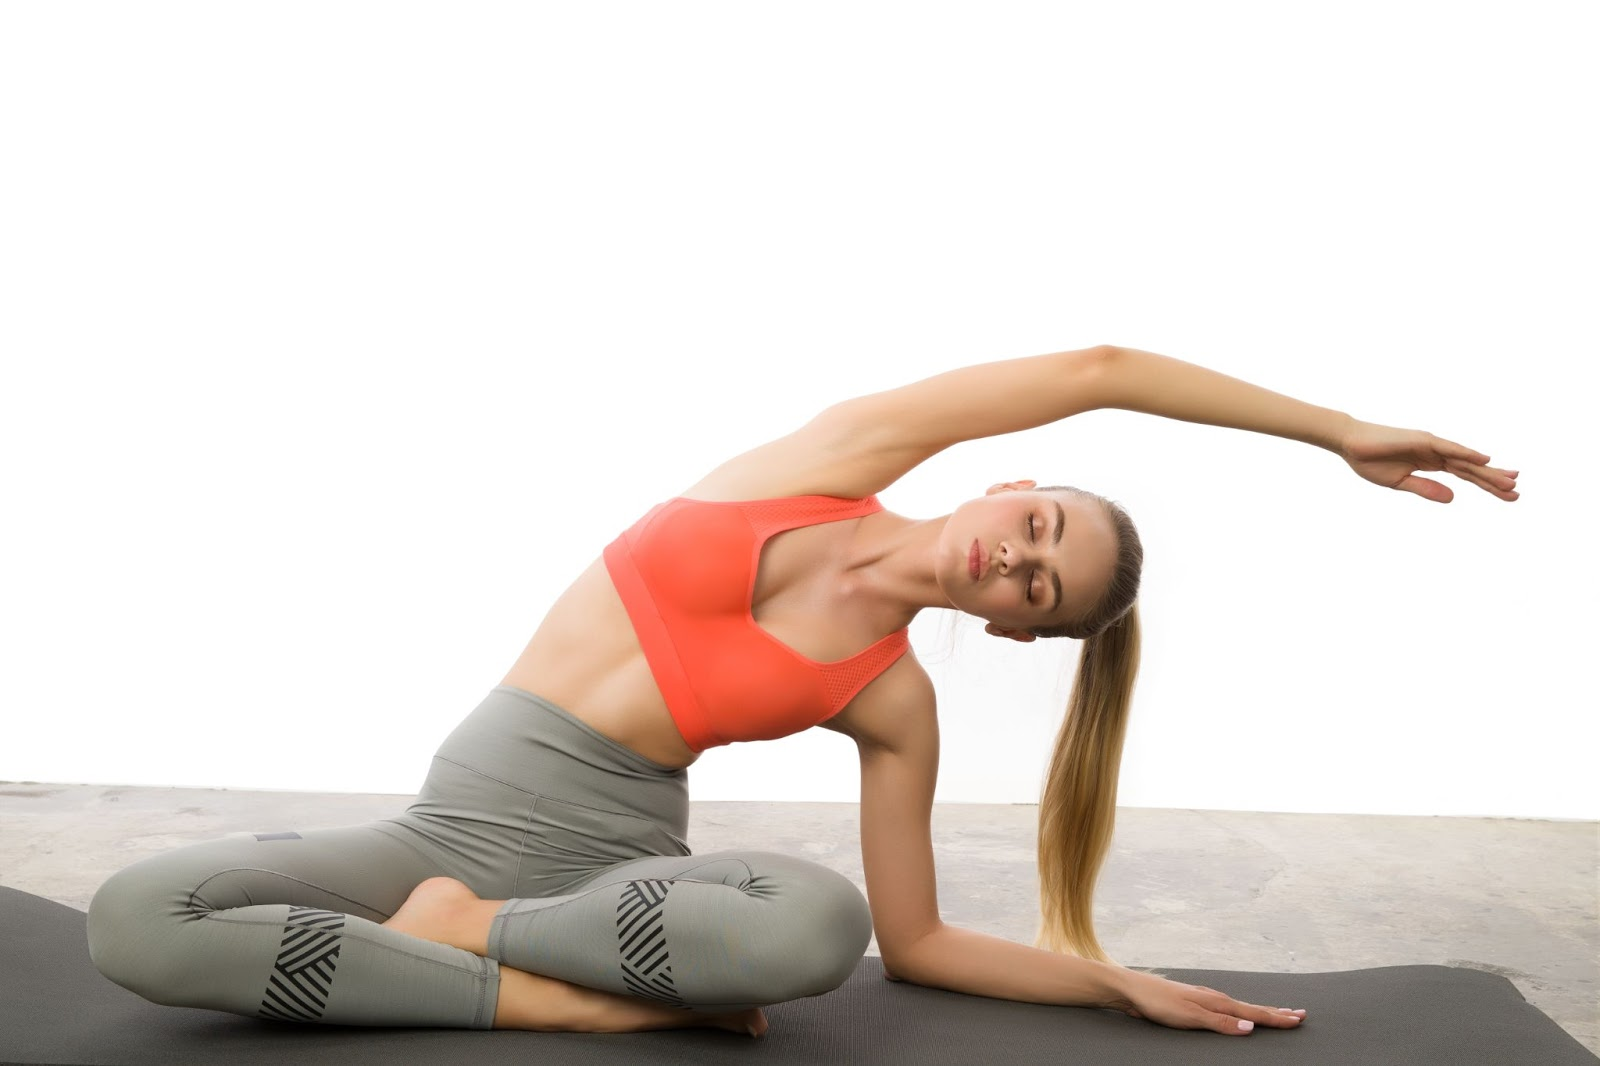 Get calm: enjoy the graphic set for the Yoga And Meditation day. Sporty young woman doing yoga